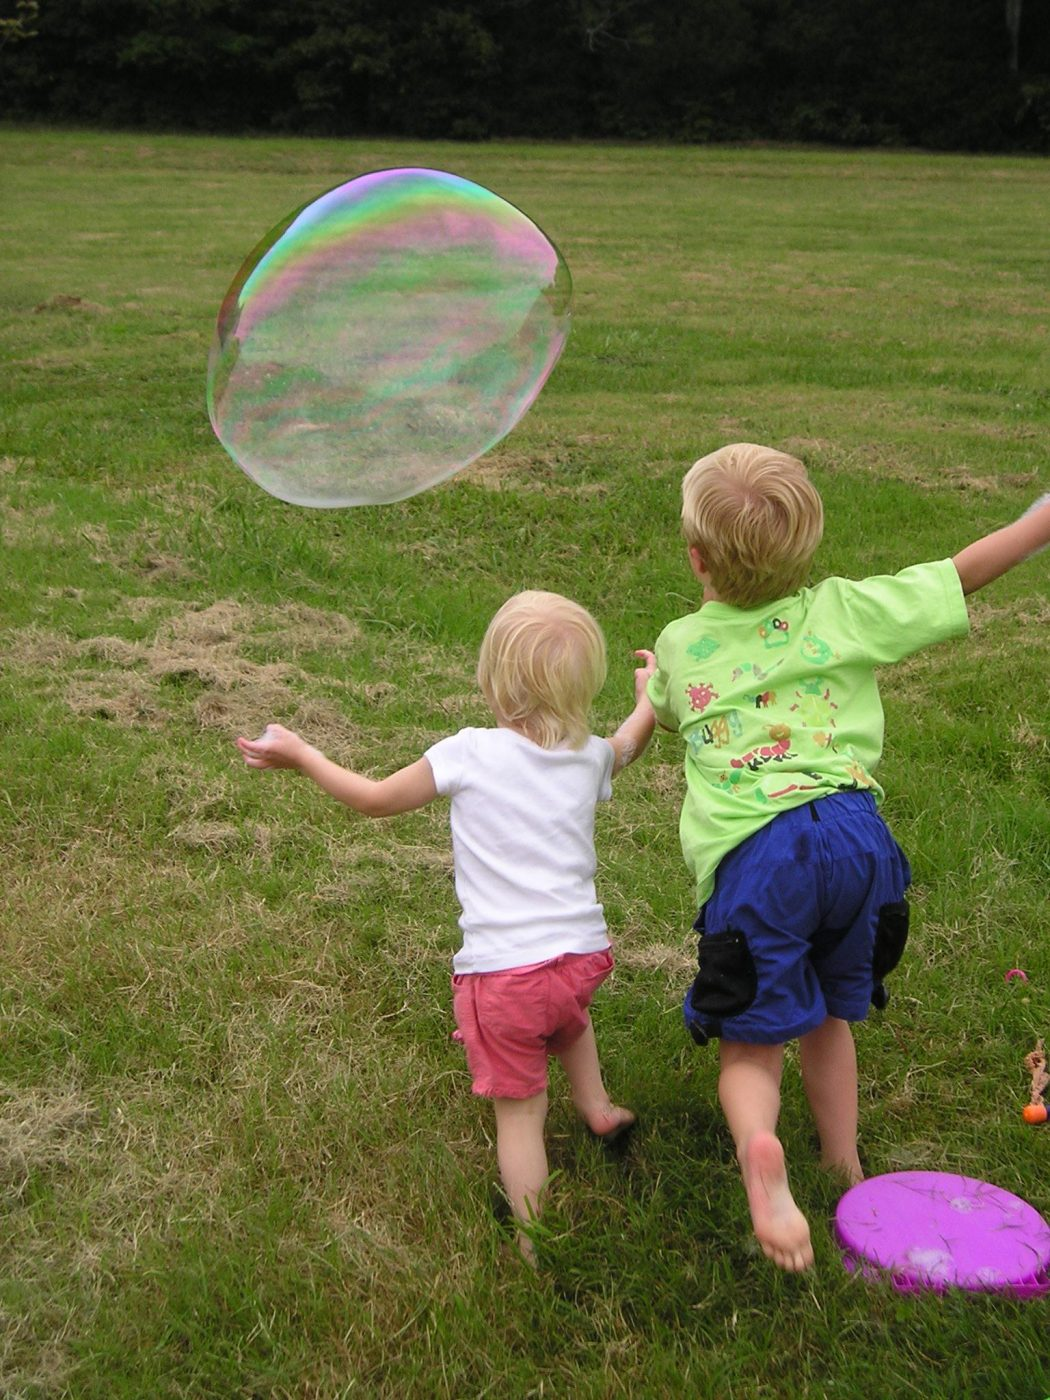 kids-chase-a-bubble-at-a-family-picnic-1408189, freeimages, by Ned Horton